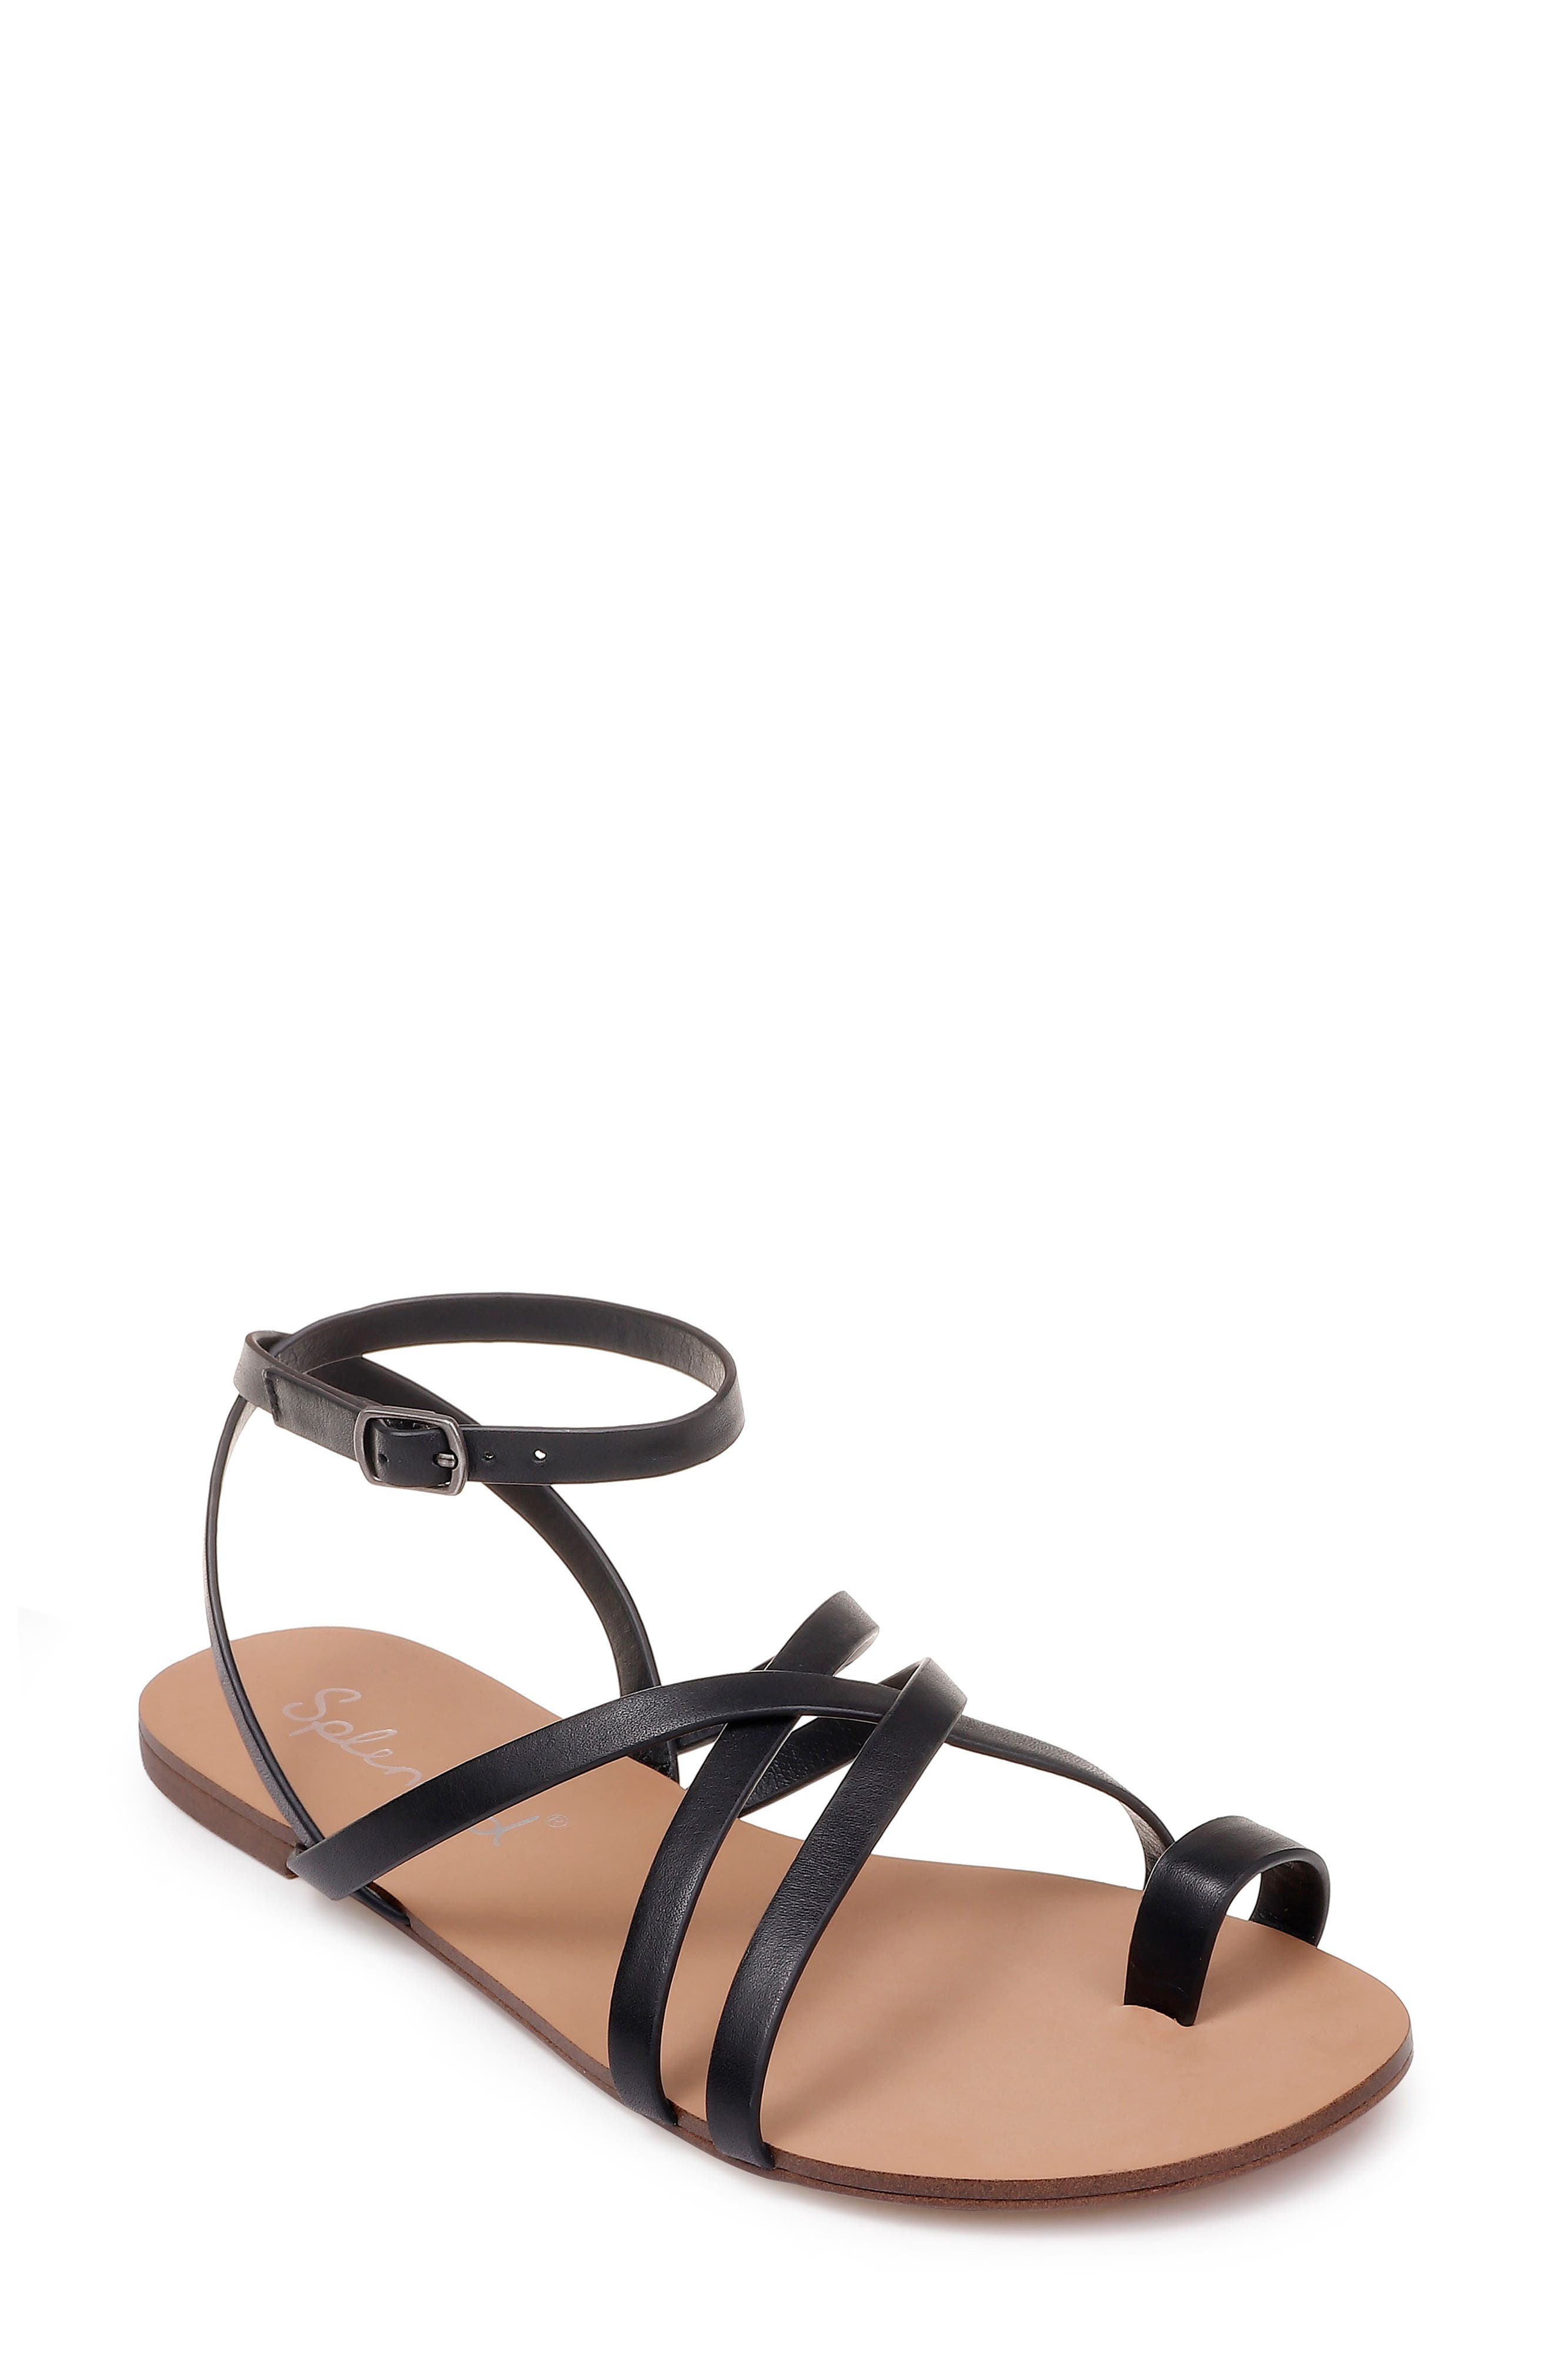 SPLENDID Sully Strappy Toe Loop Sandal, Main, color, BLACK LEATHER